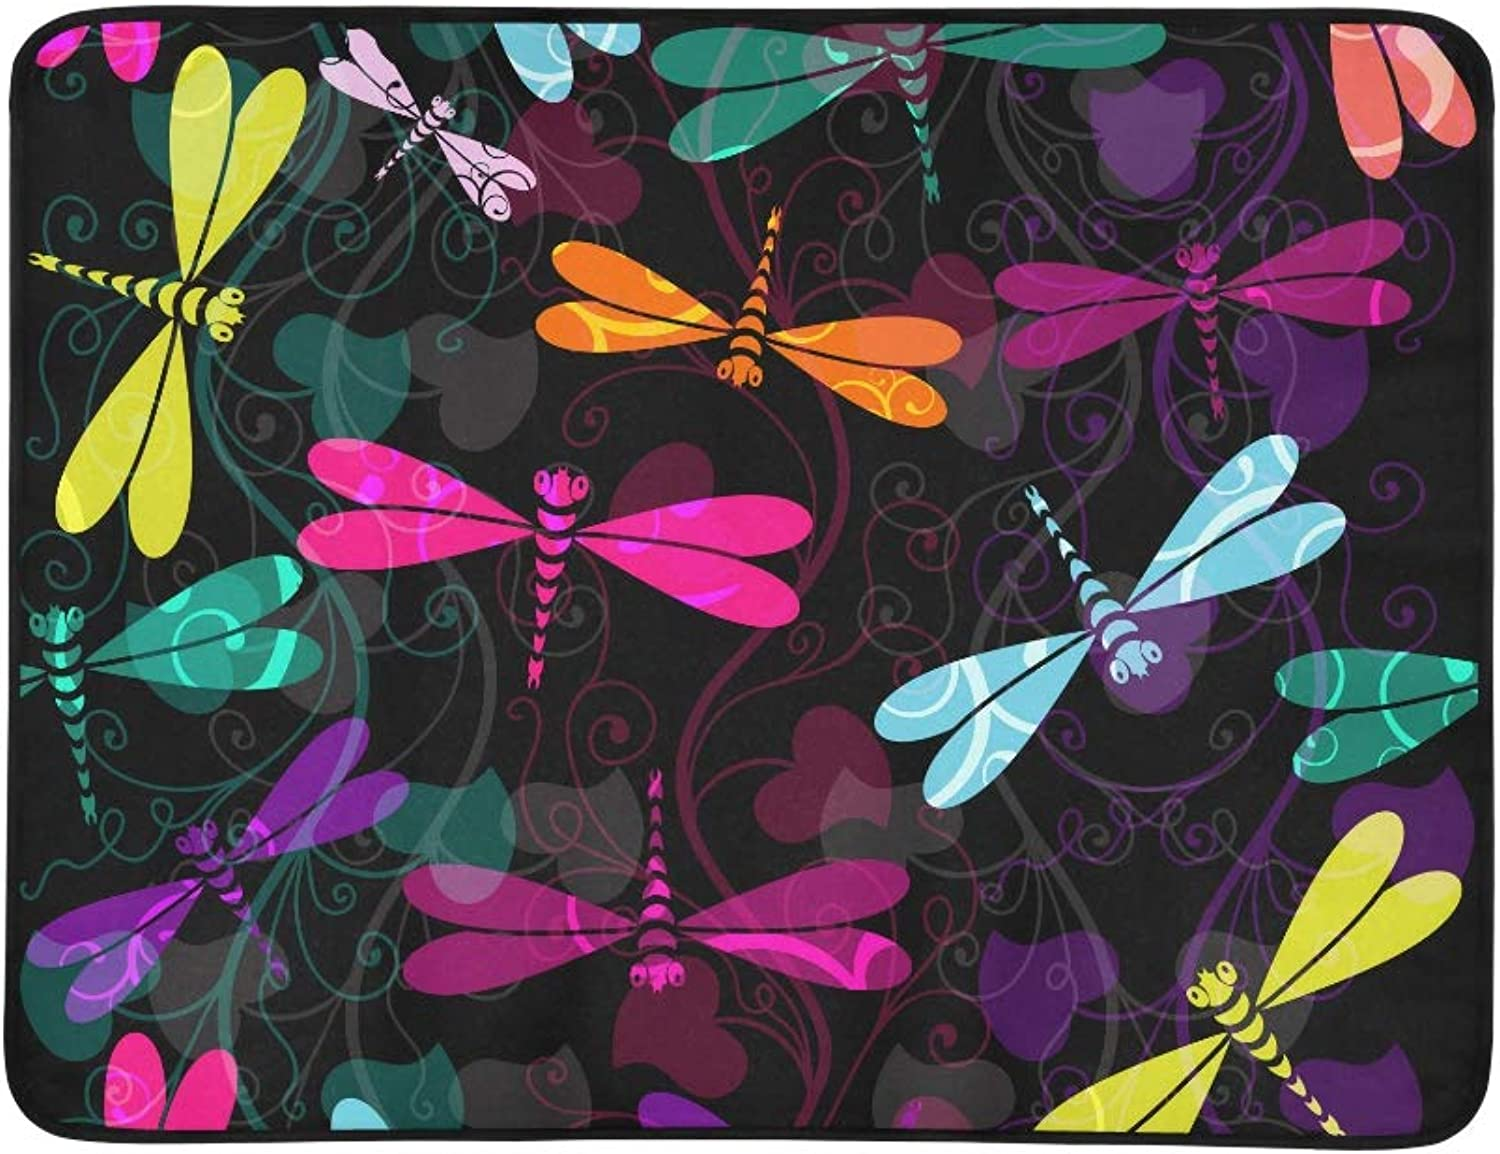 colorful Dragonflies and Translucent Vintage Curls Pattern Portable and Foldable Blanket Mat 60x78 Inch Handy Mat for Camping Picnic Beach Indoor Outdoor Travel